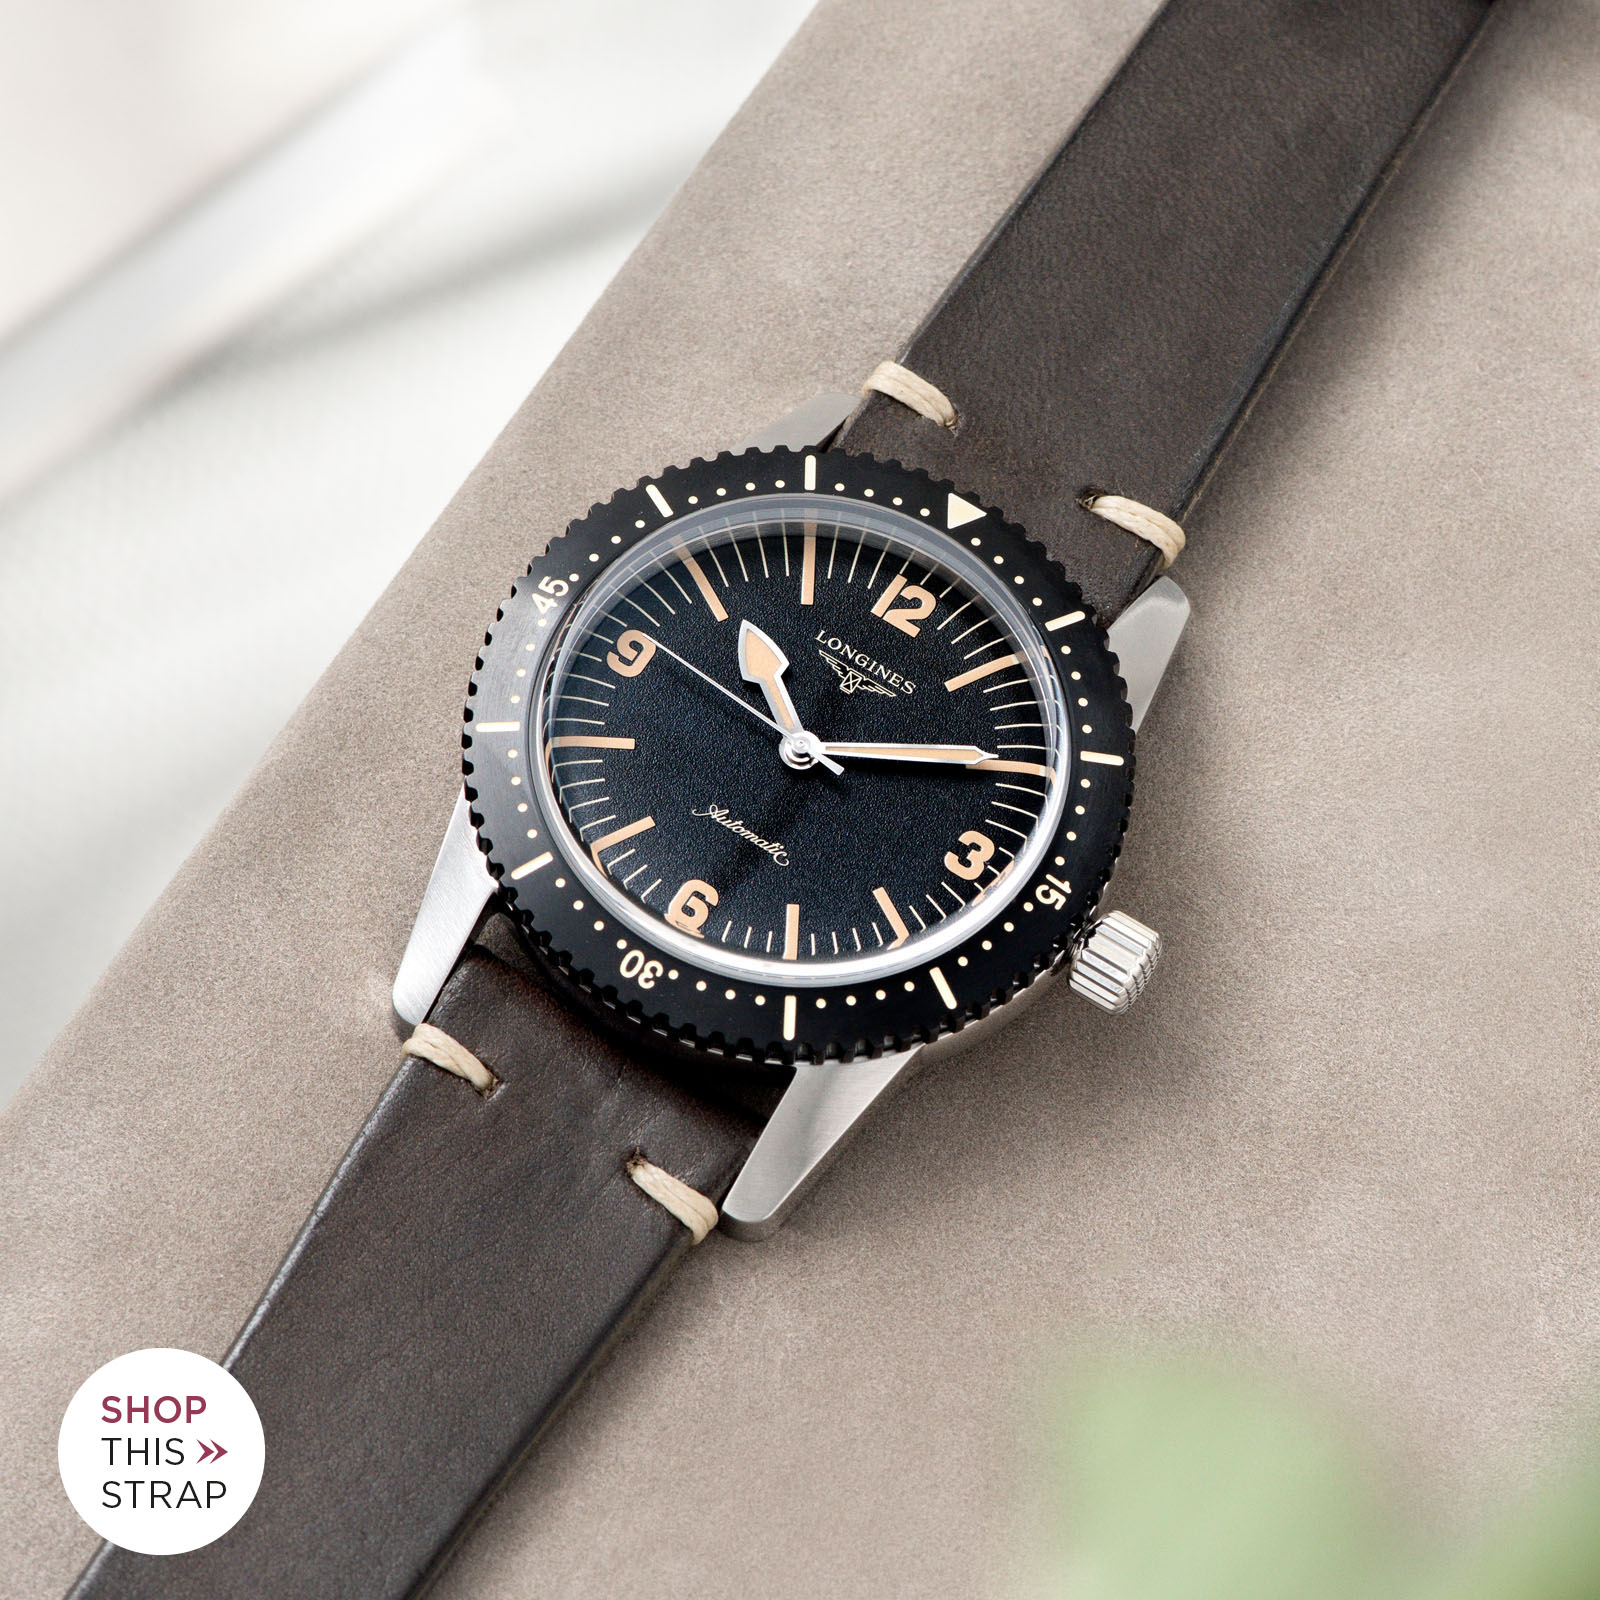 Bulang and Sons_Strap Guide_Longines Skin Diver_Pionbo Grey Leather Watch Strap